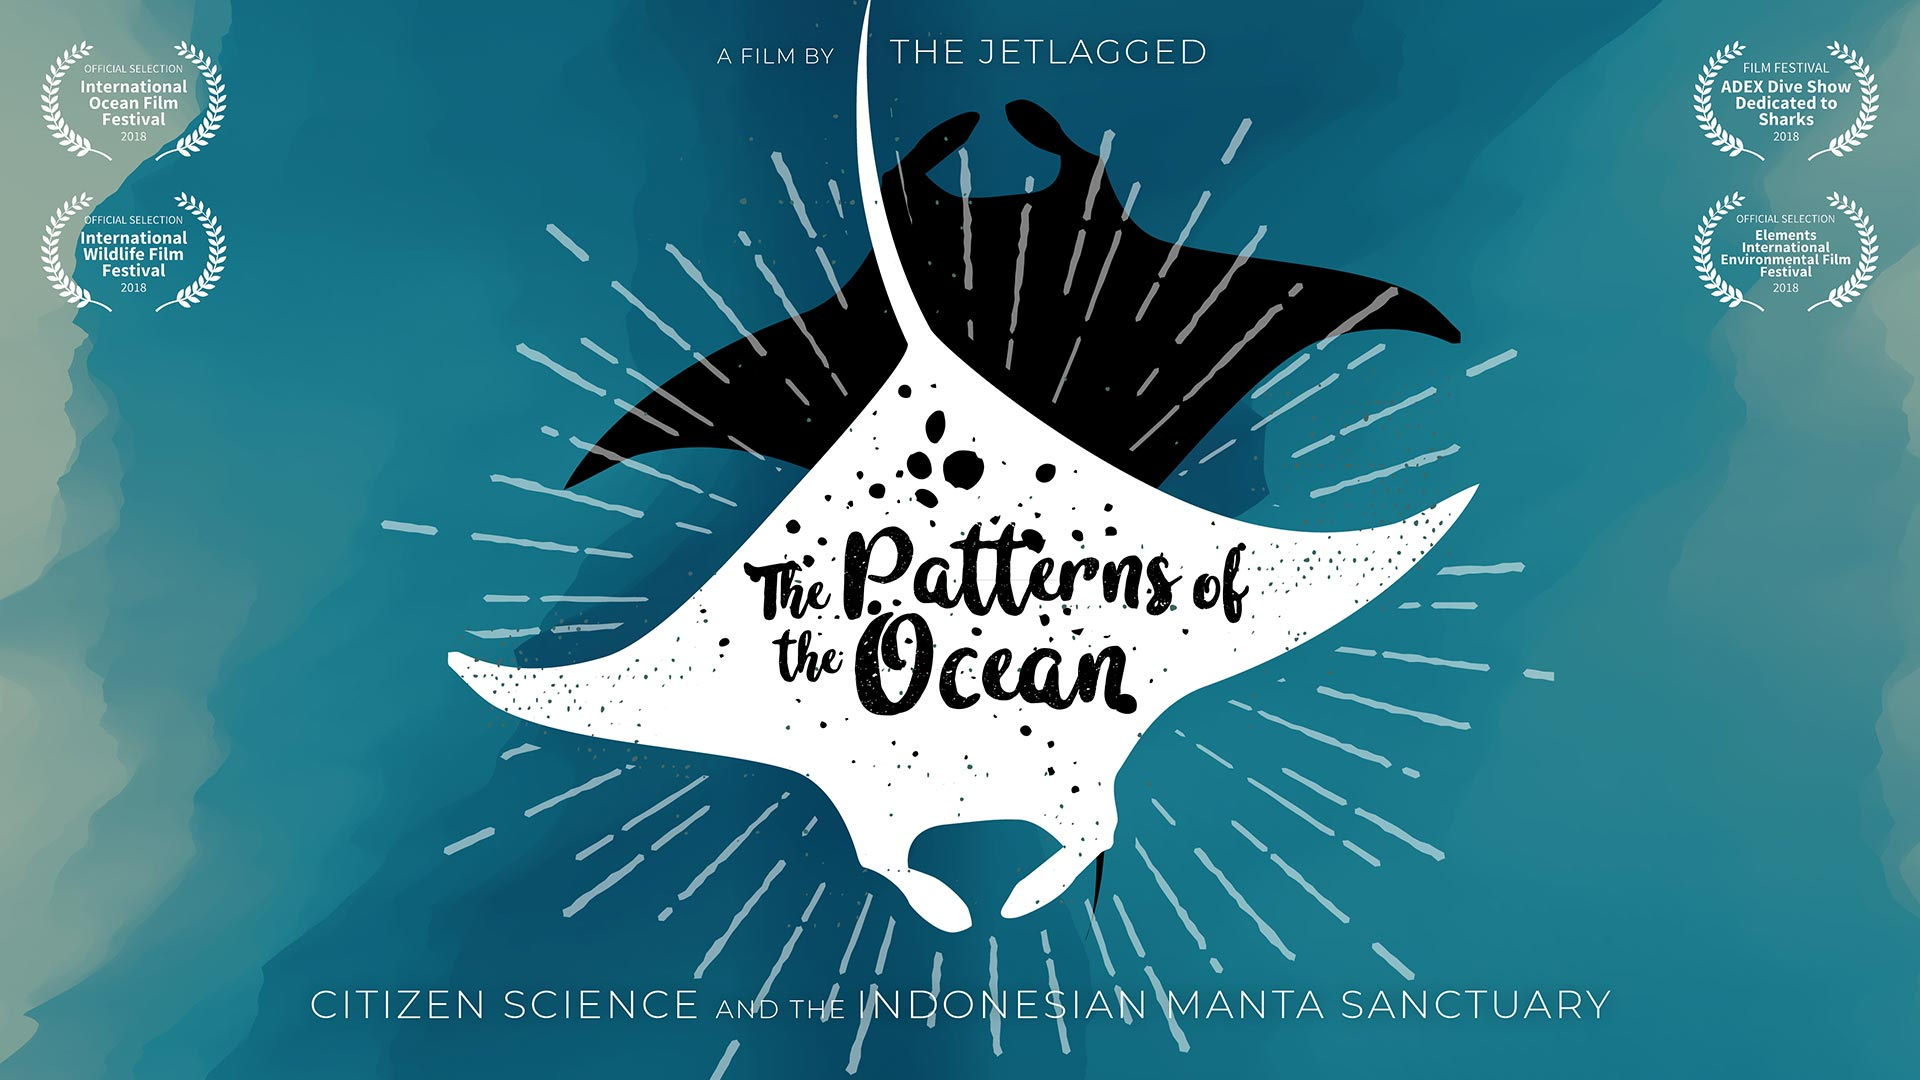 The Patterns of the Ocean